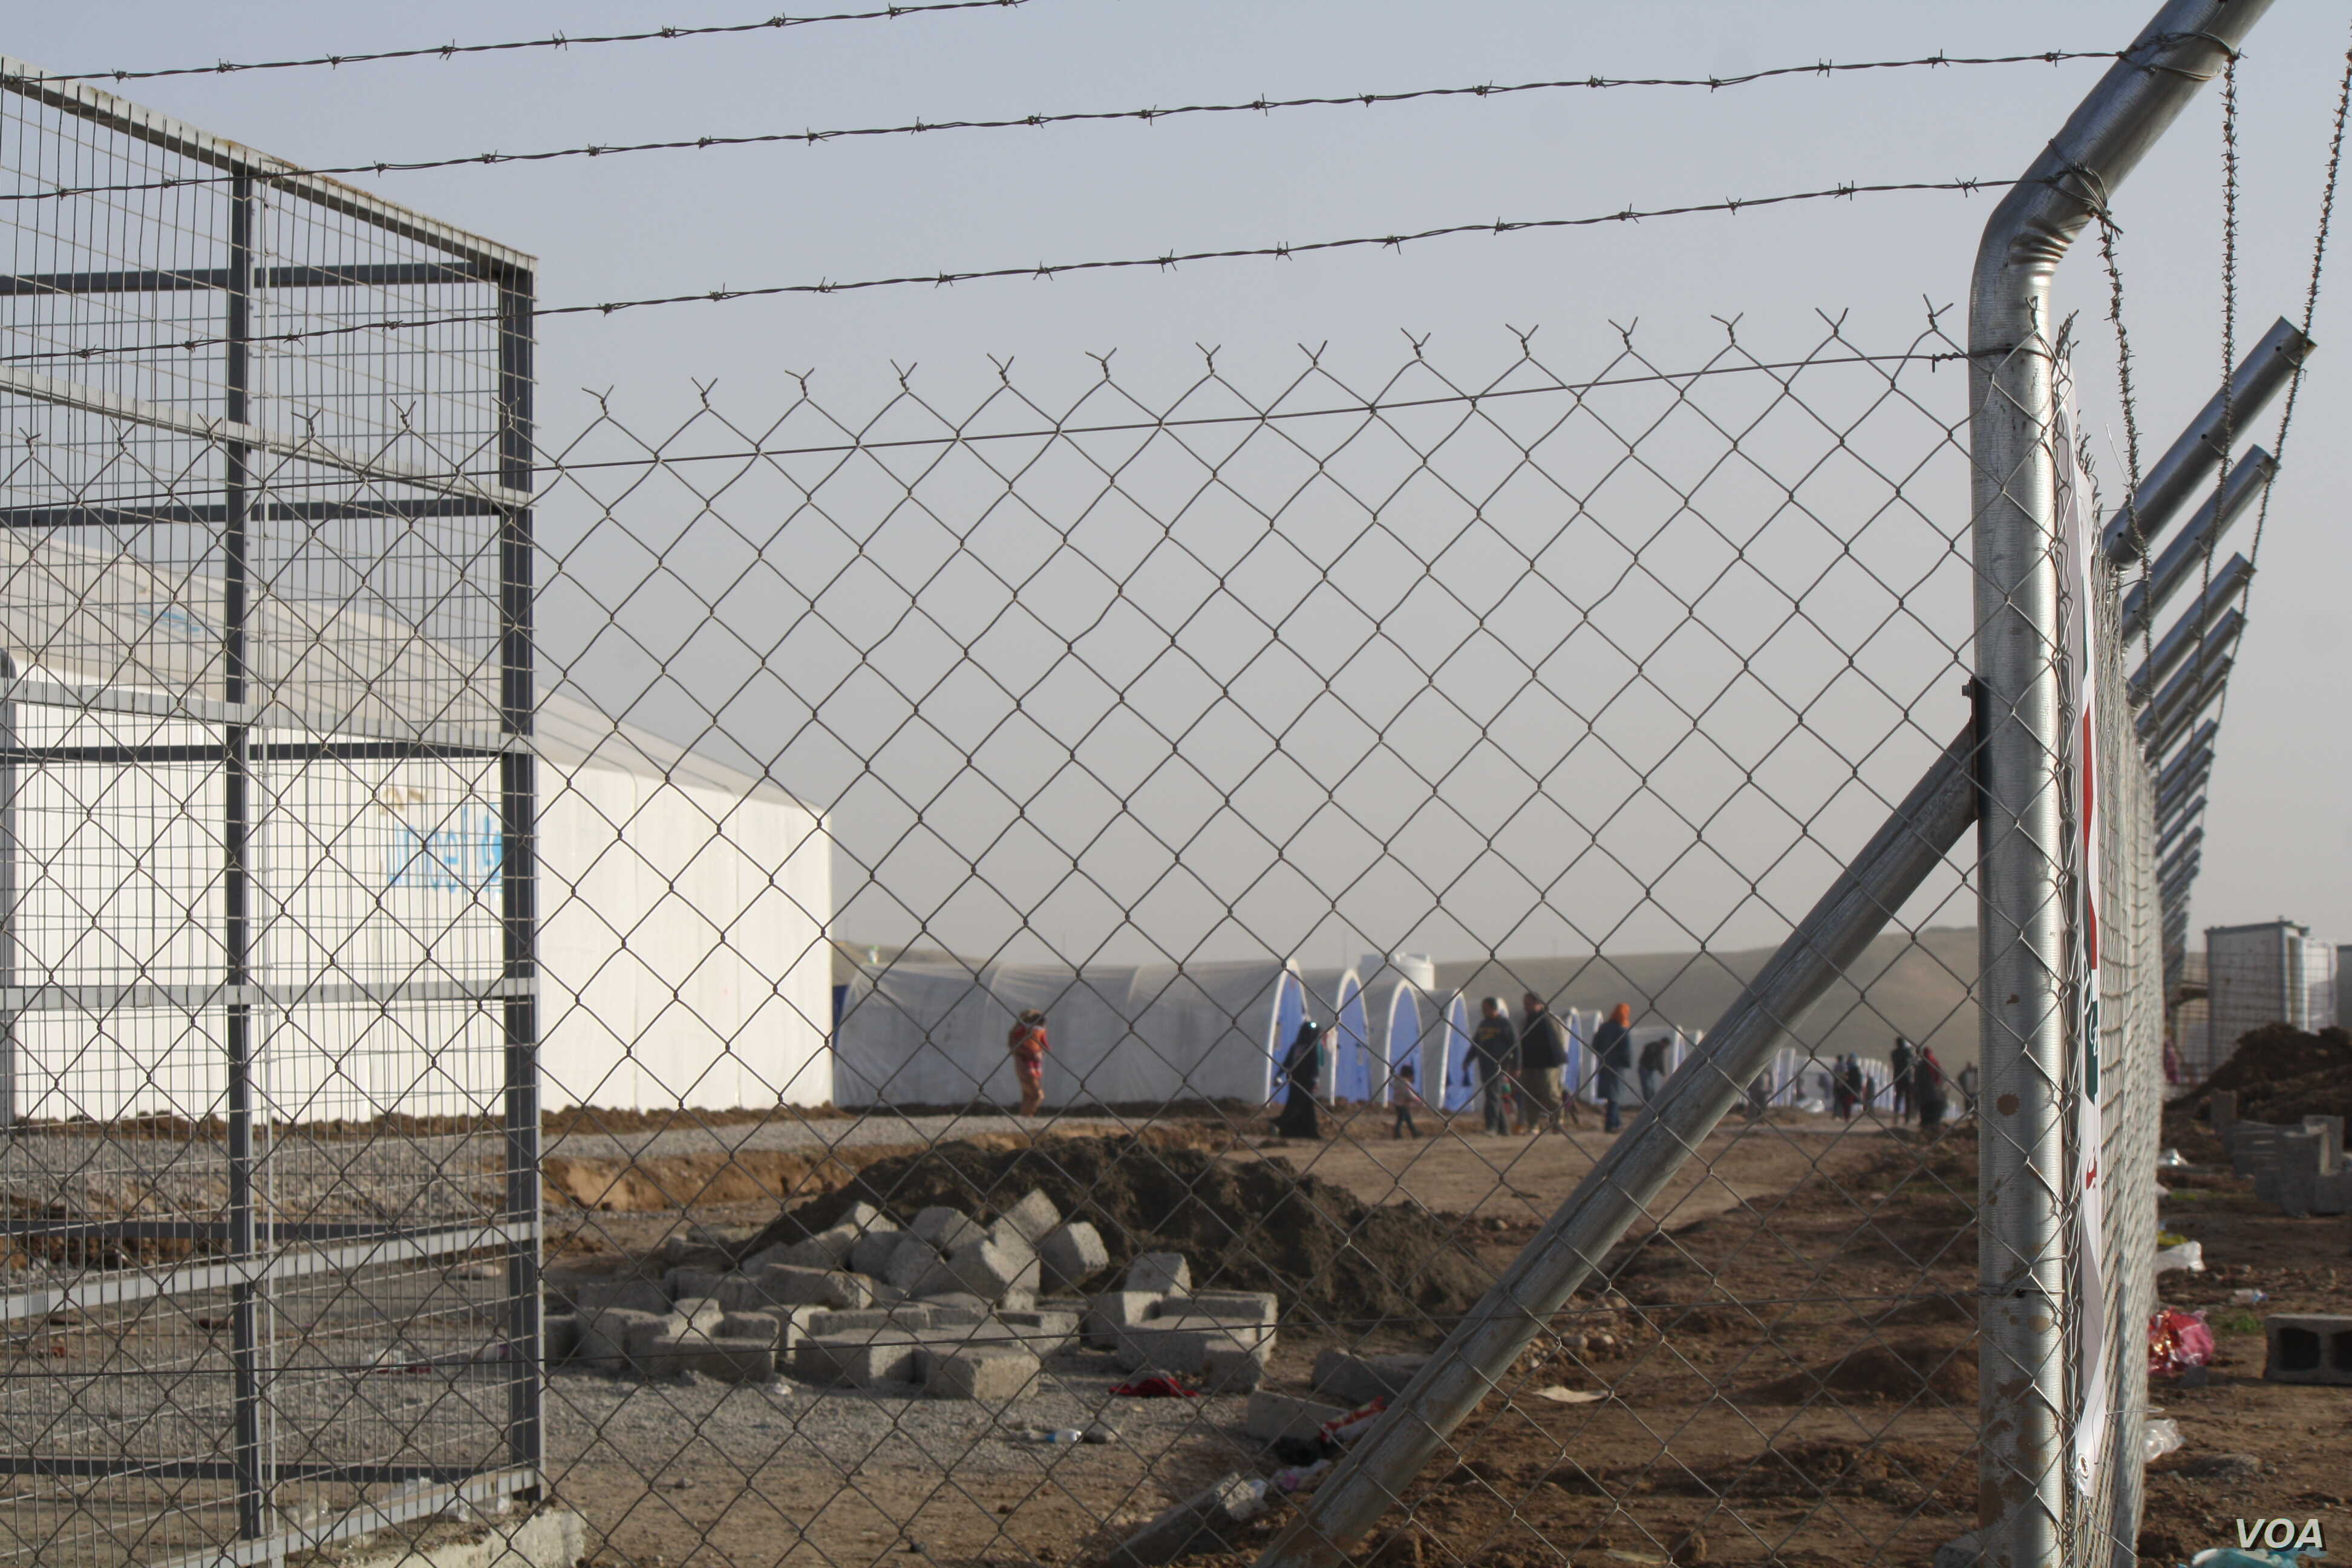 Officials expect that a million people could be displaced by the battle for Mosul by the war's end.  In October, new camps were empty but now those and others are being filled nearly as fast as they are built, Hassan Shams, Kurdish Iraq, Jan. 10, 201...